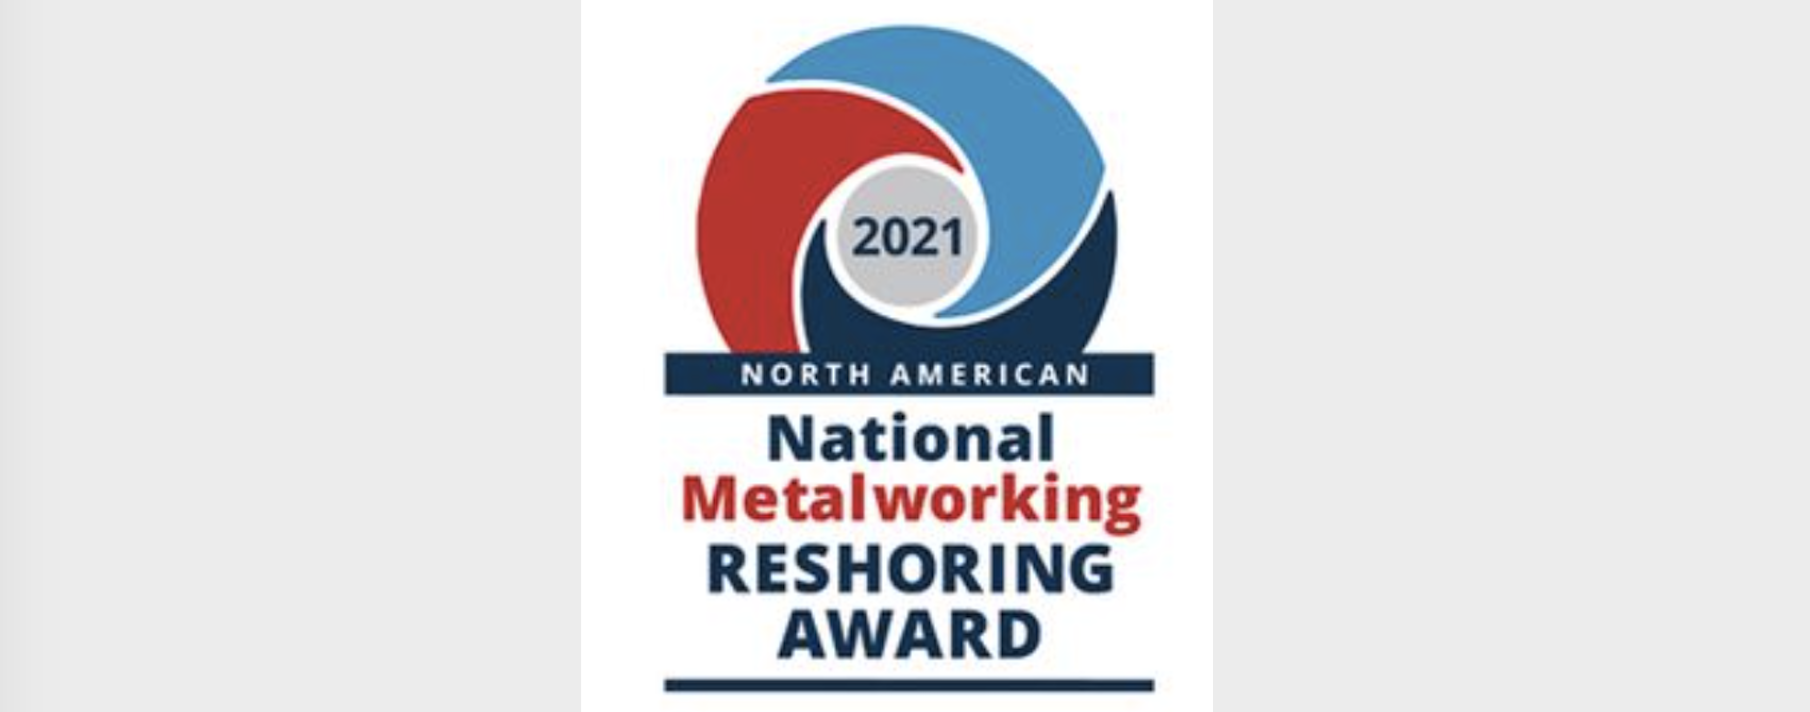 Forth National Metalworking Reshoring Award 2021 – You have to be in it, to win it!